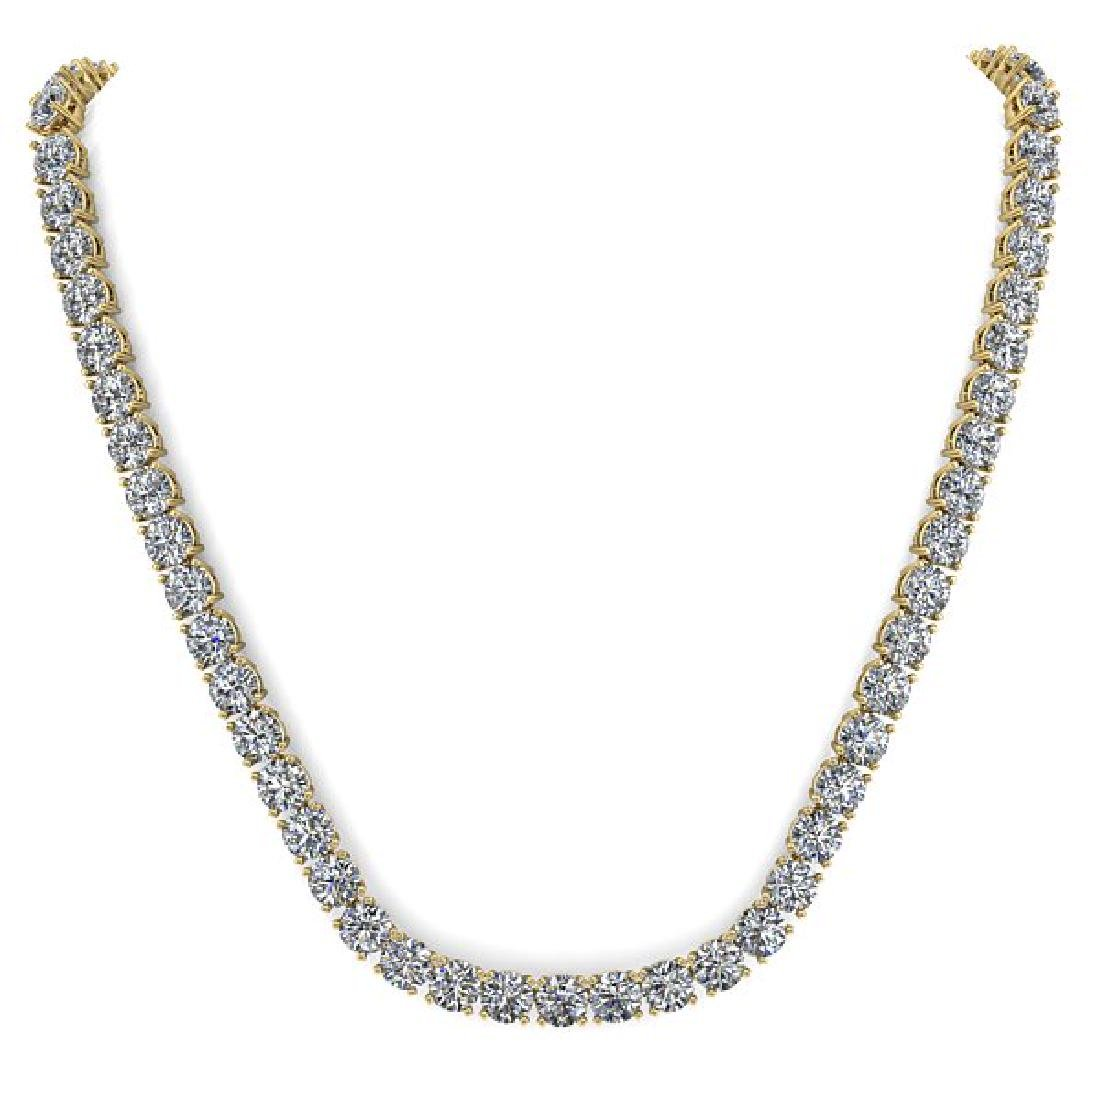 30 CTW Certified SI Diamond Necklace 14K Yellow Gold - 3